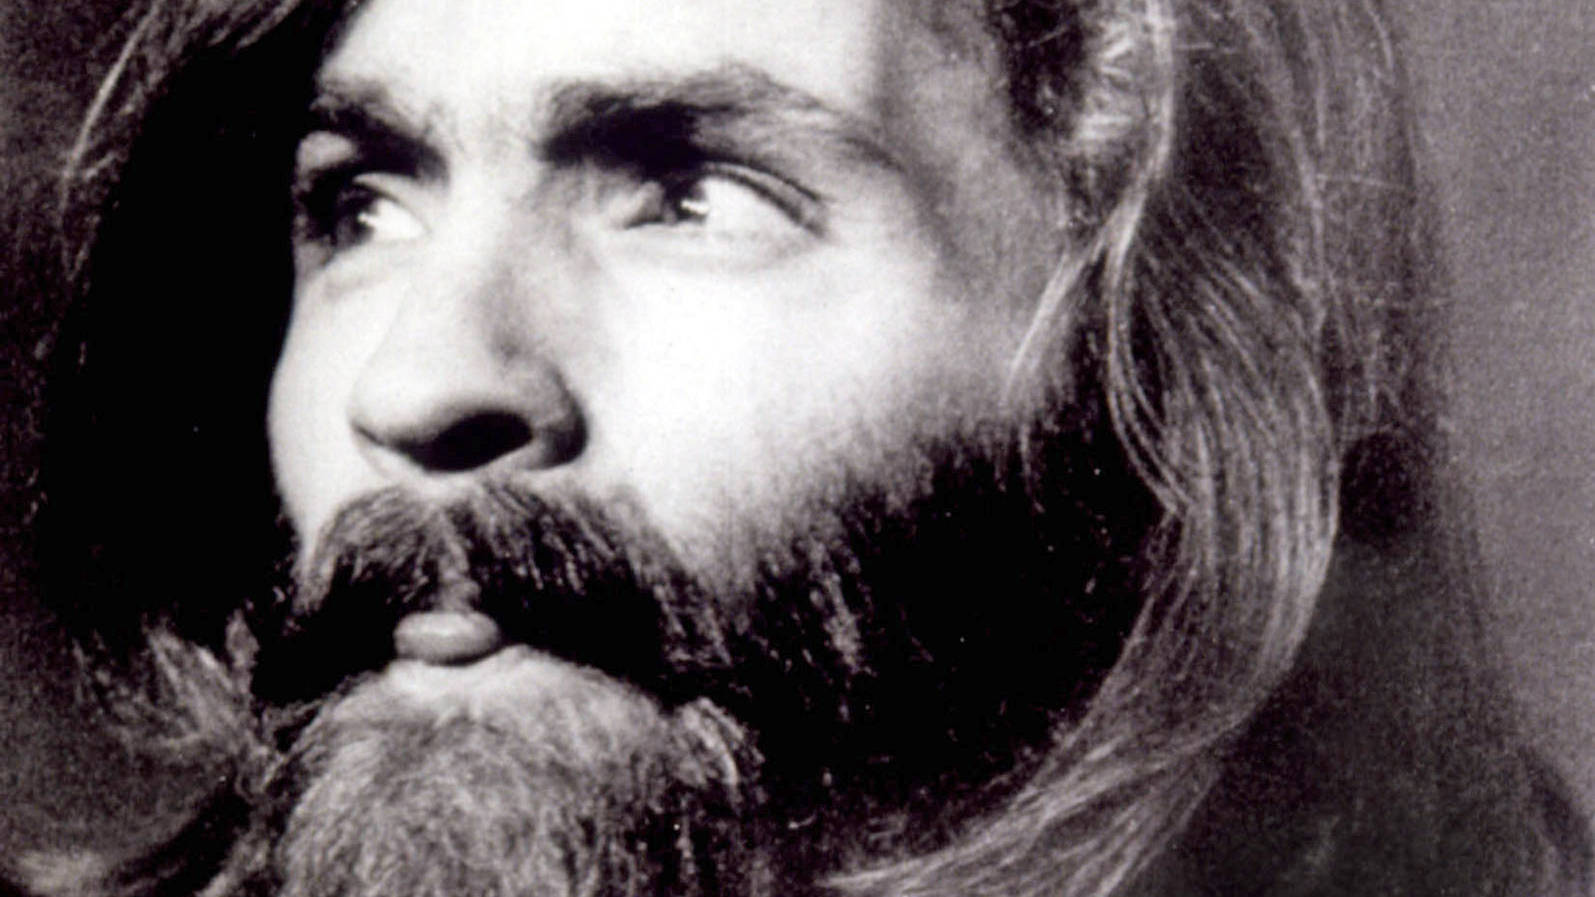 How The Beatles' Helter Skelter influenced Charles Manson